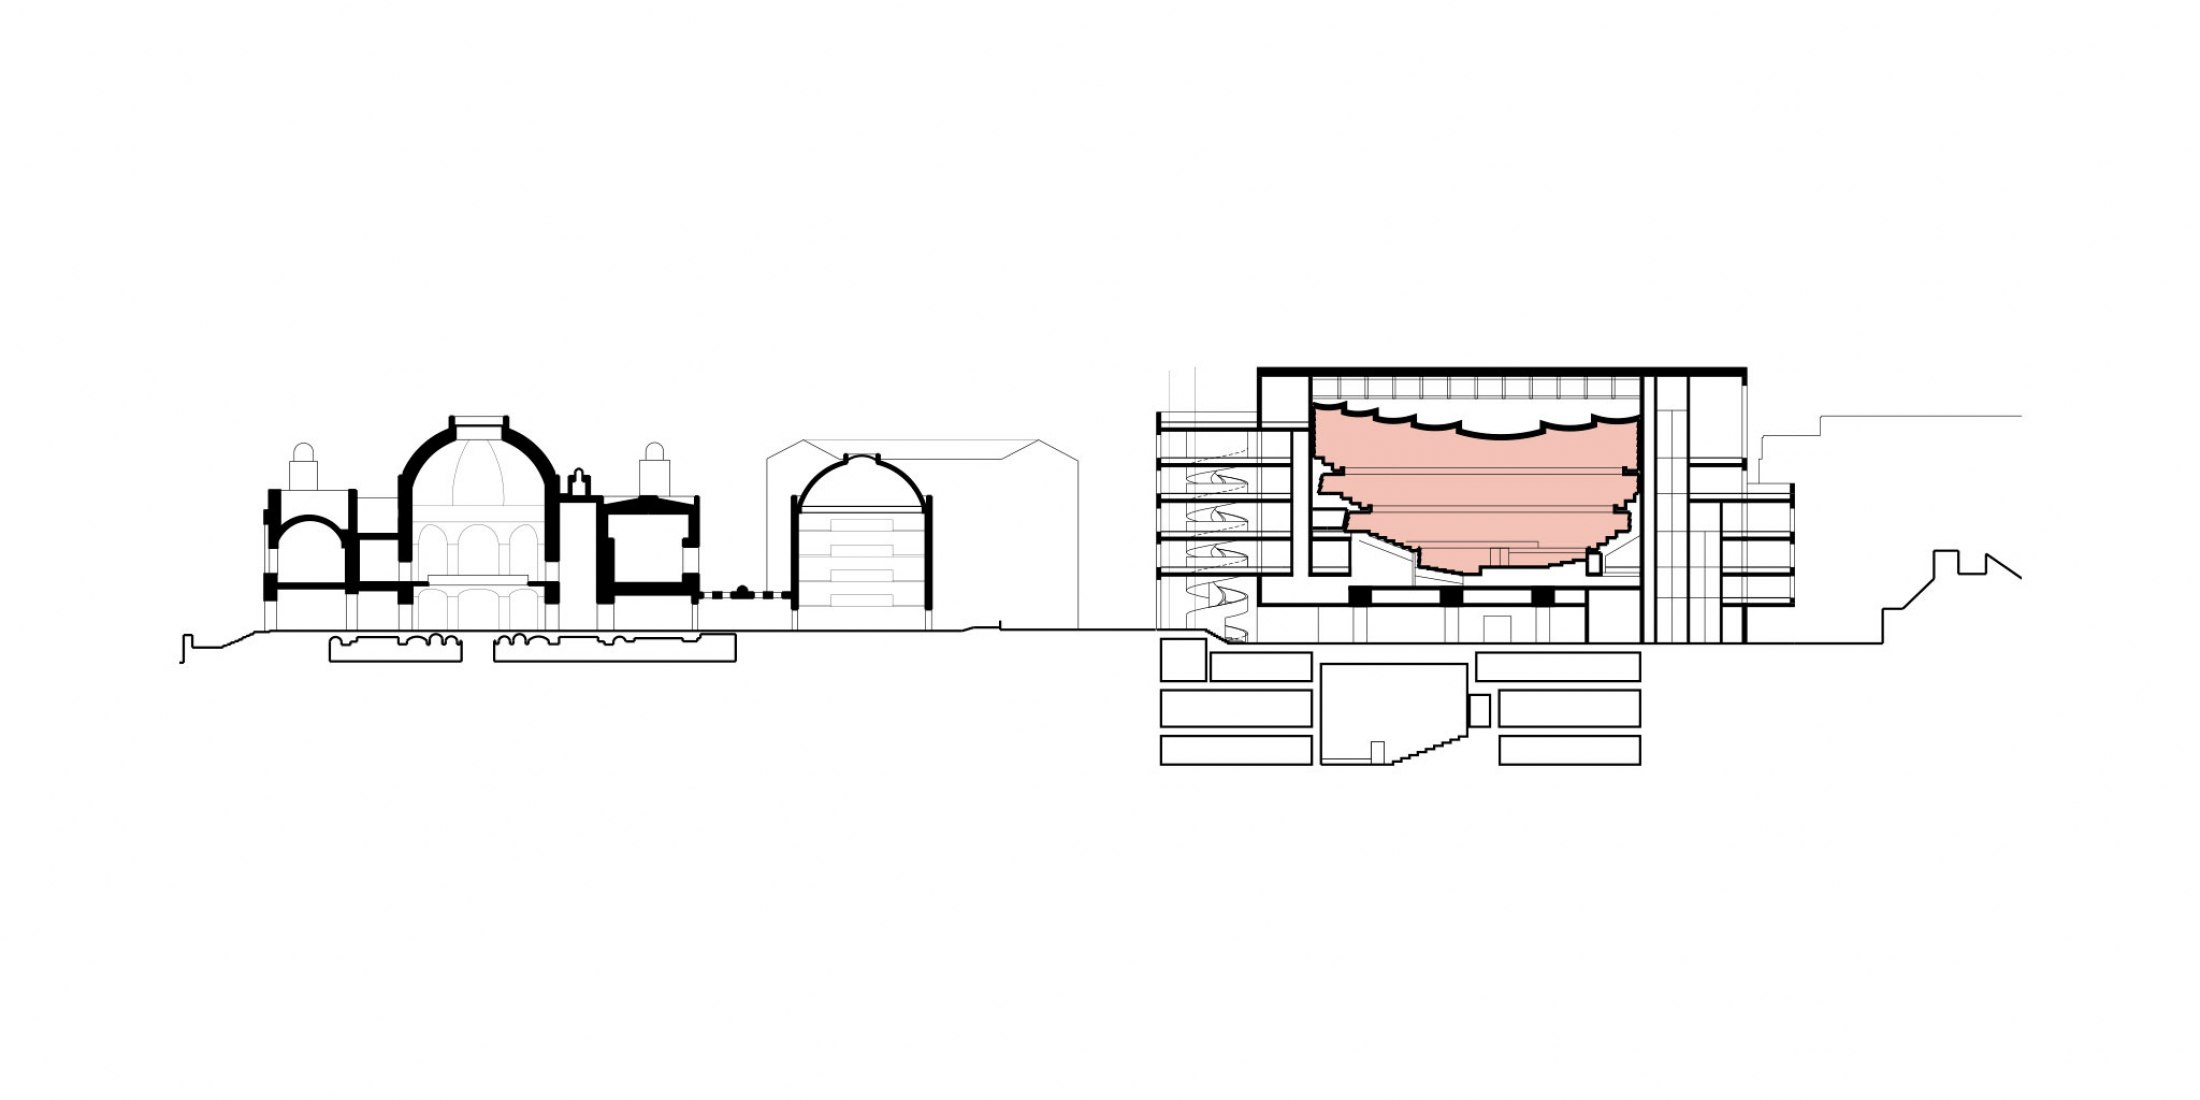 Designs for IMPACT Centre by David Chipperfield Architects